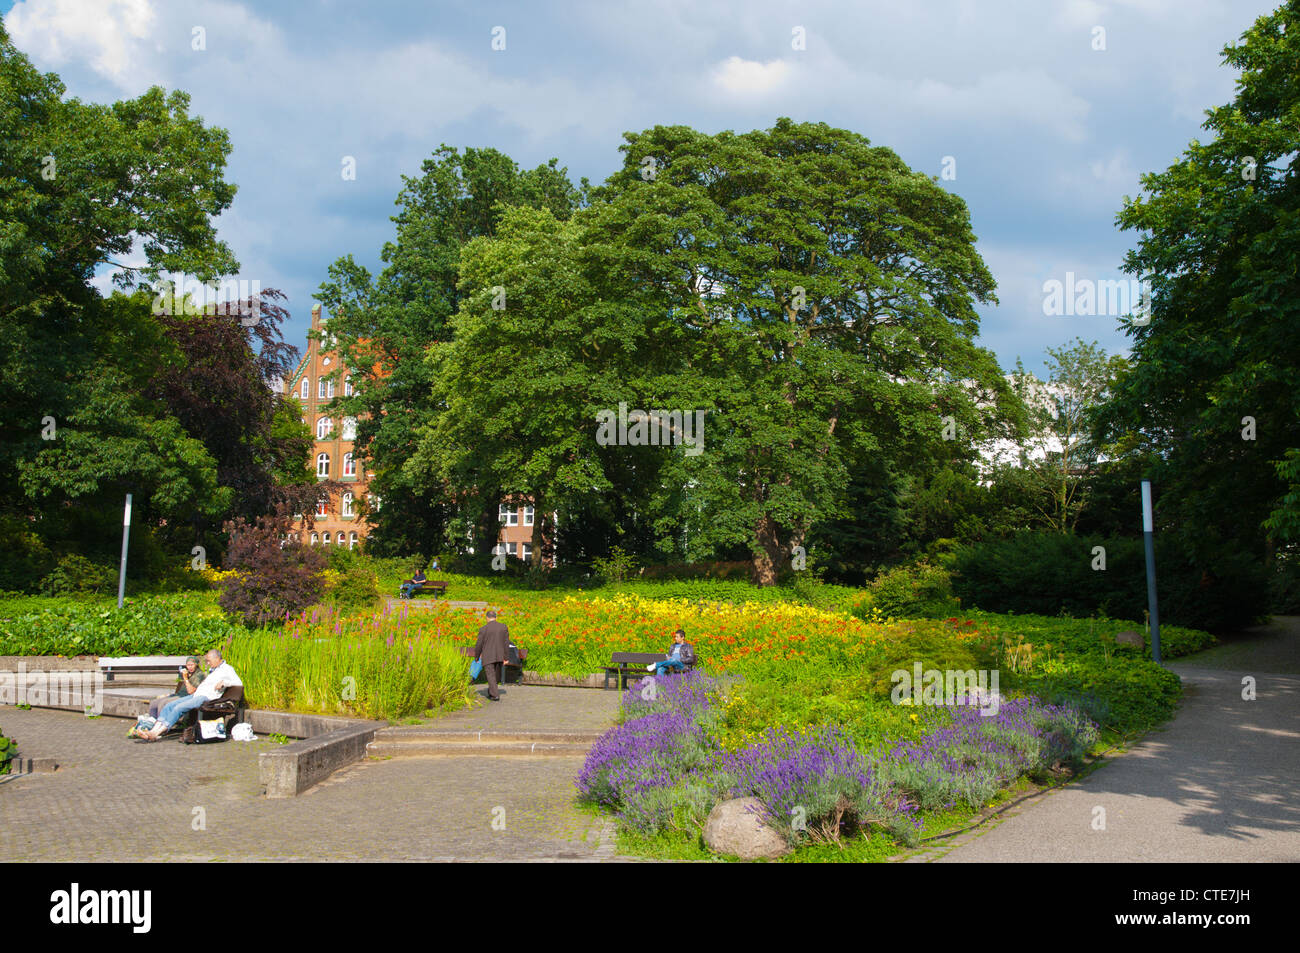 Grosse Wallanlagen park Sankt Pauli district Hamburg Germany Europe - Stock Image